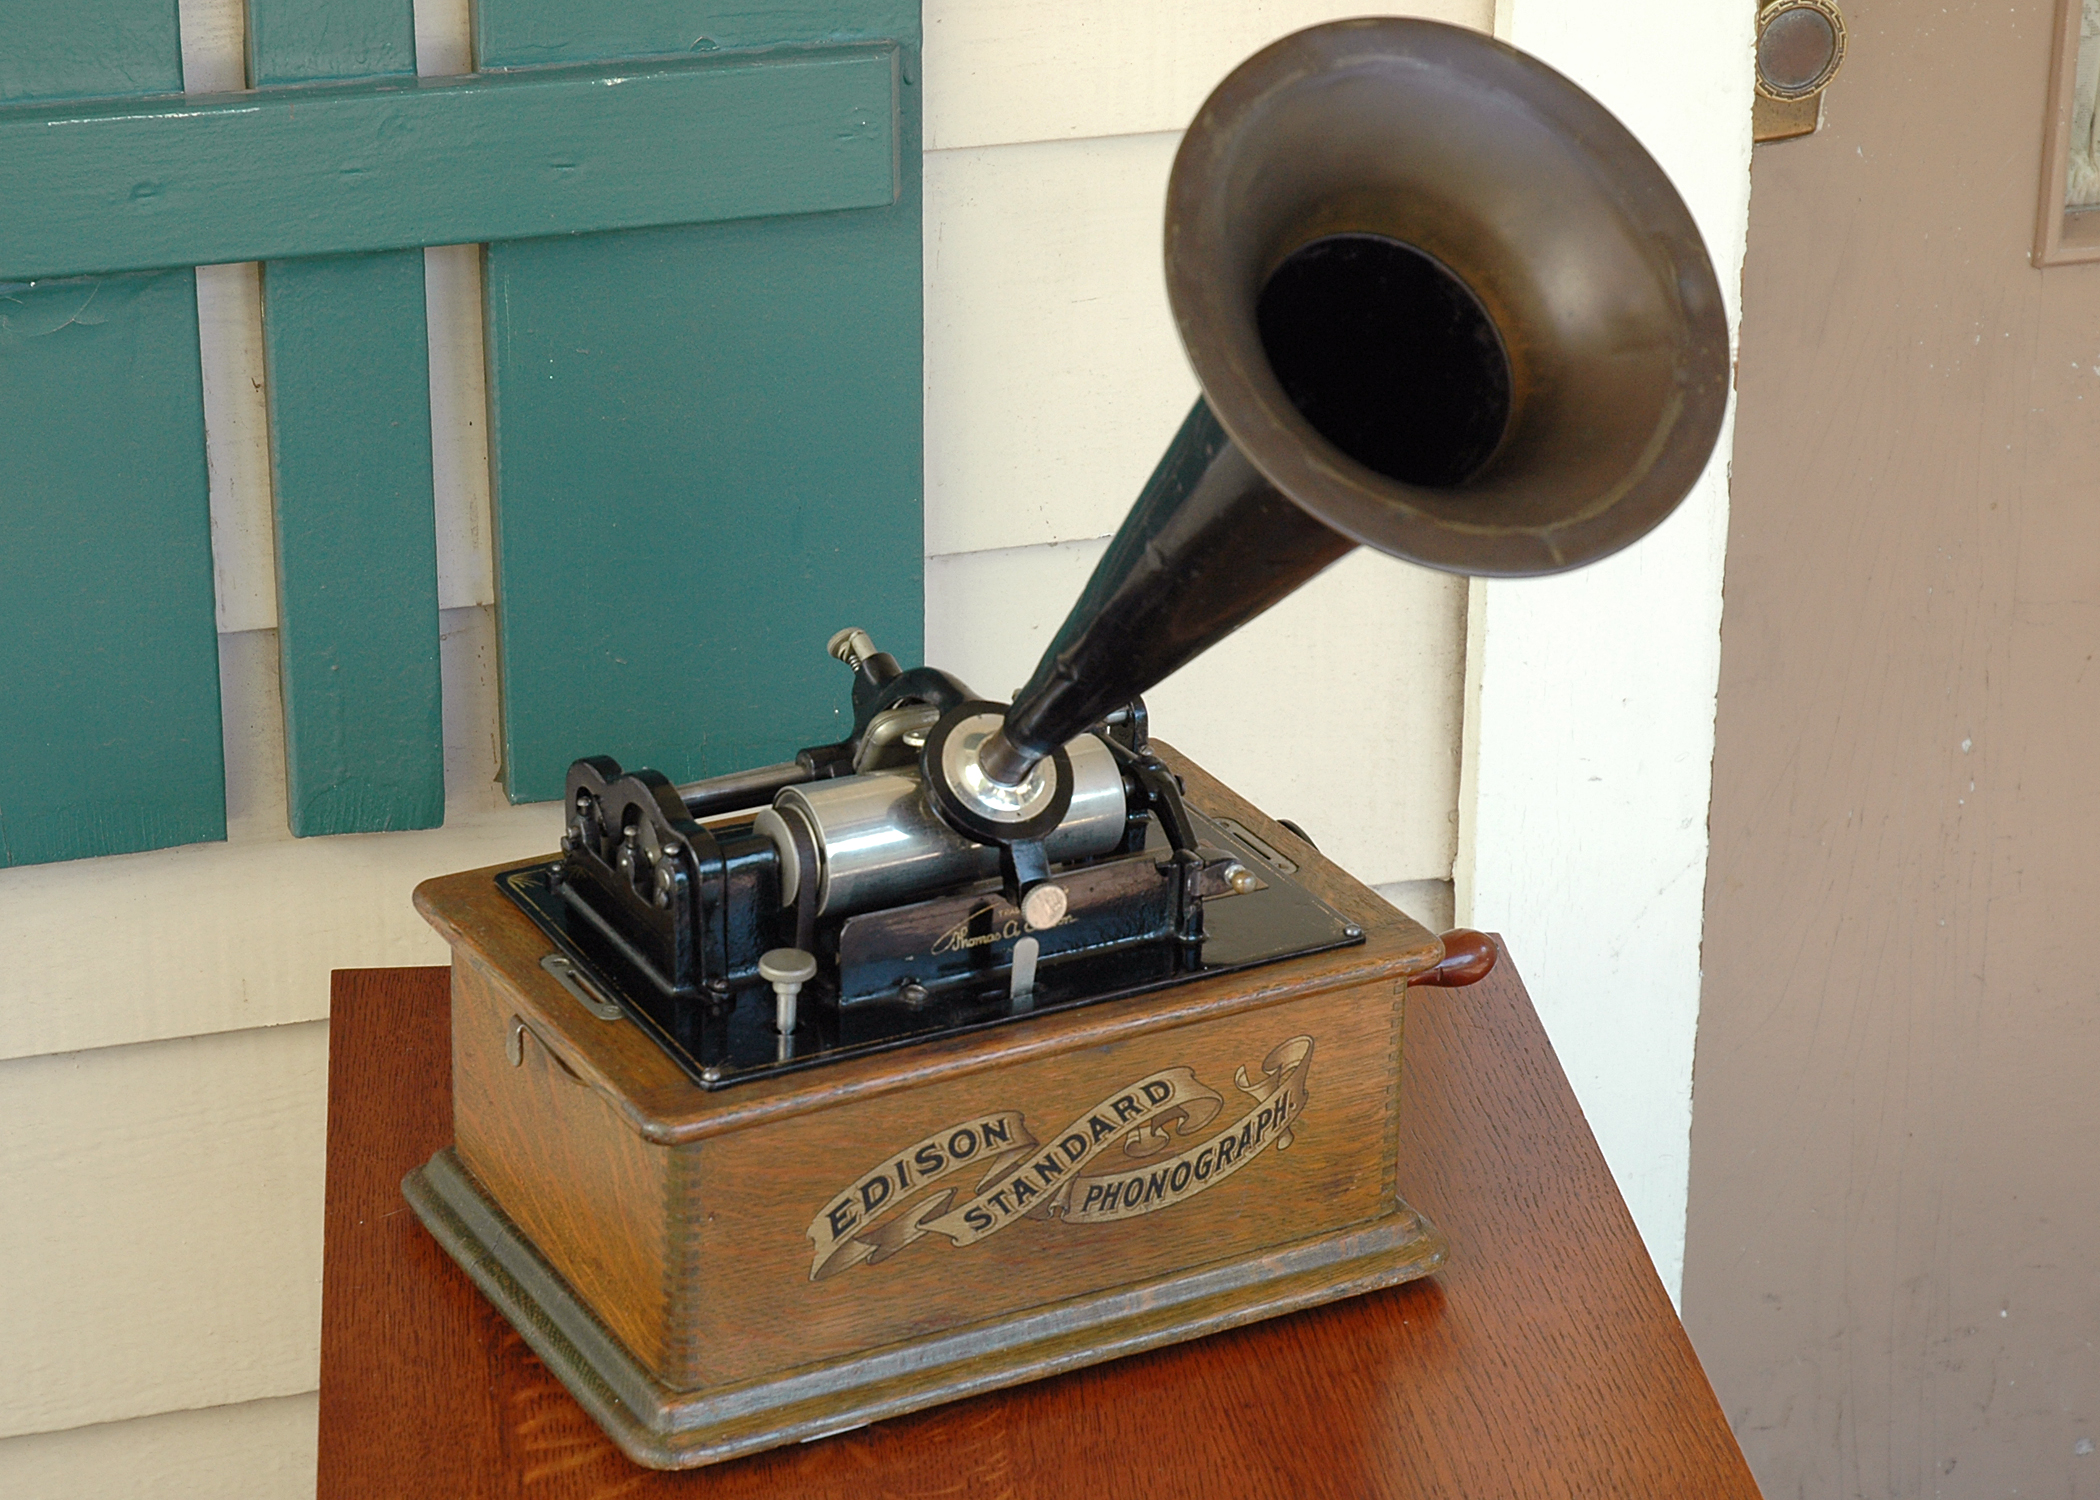 http://www.antiquephono.org/wp-content/uploads/2014/04/fig12_wide_horn.jpg